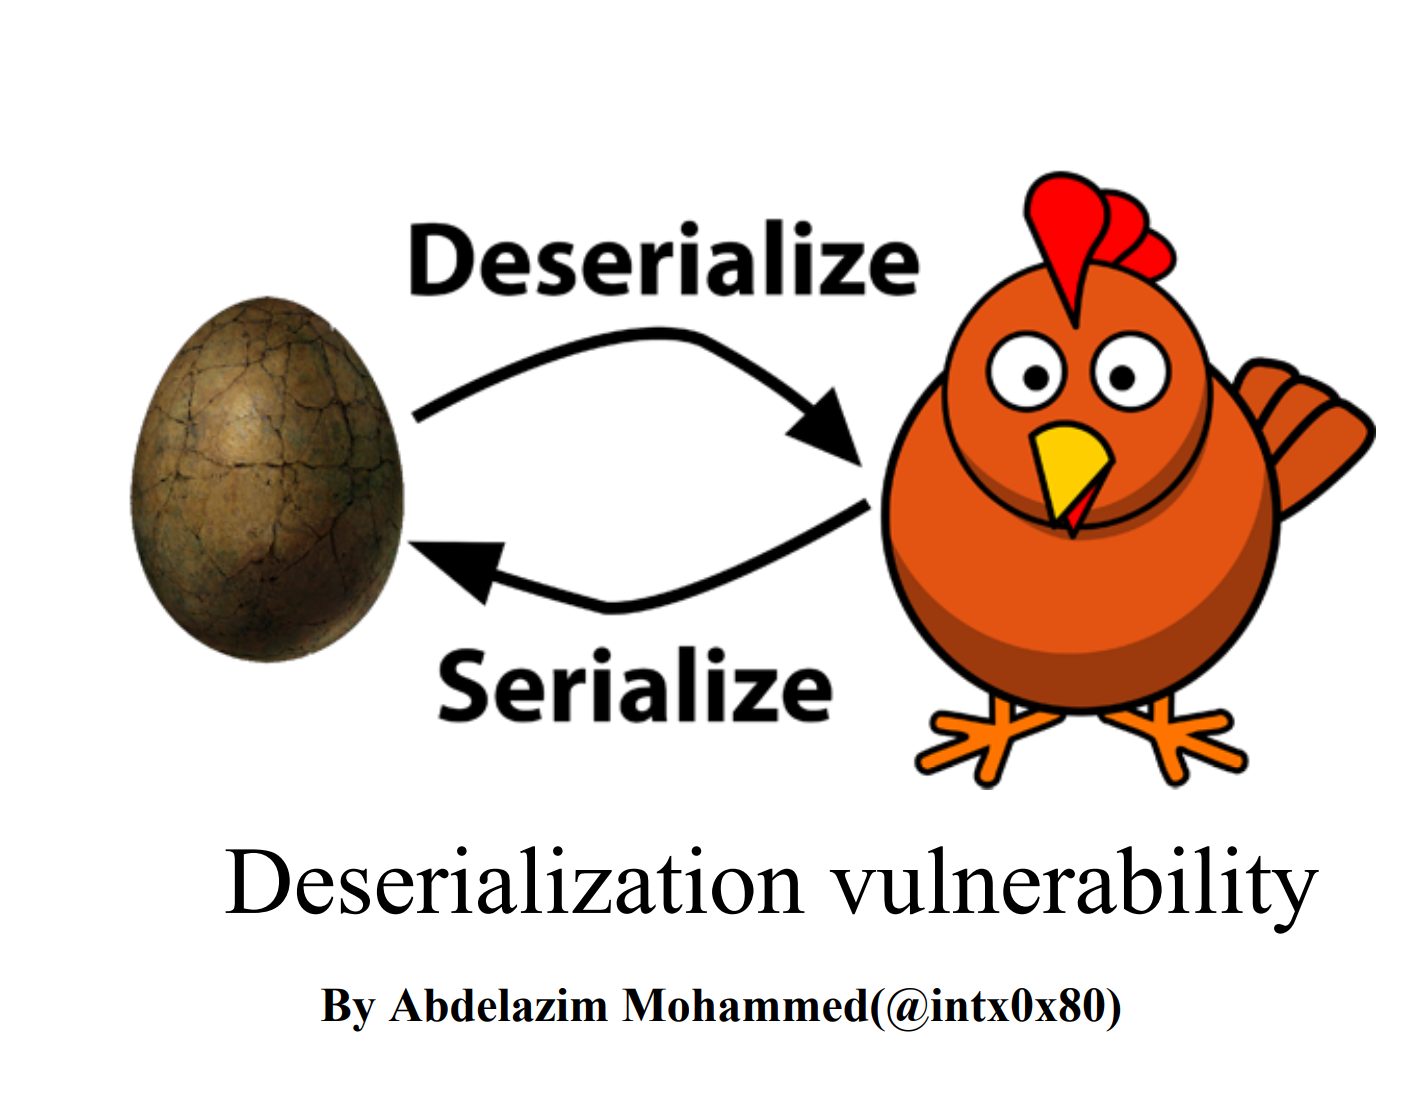 Deserialization vulnerabilities